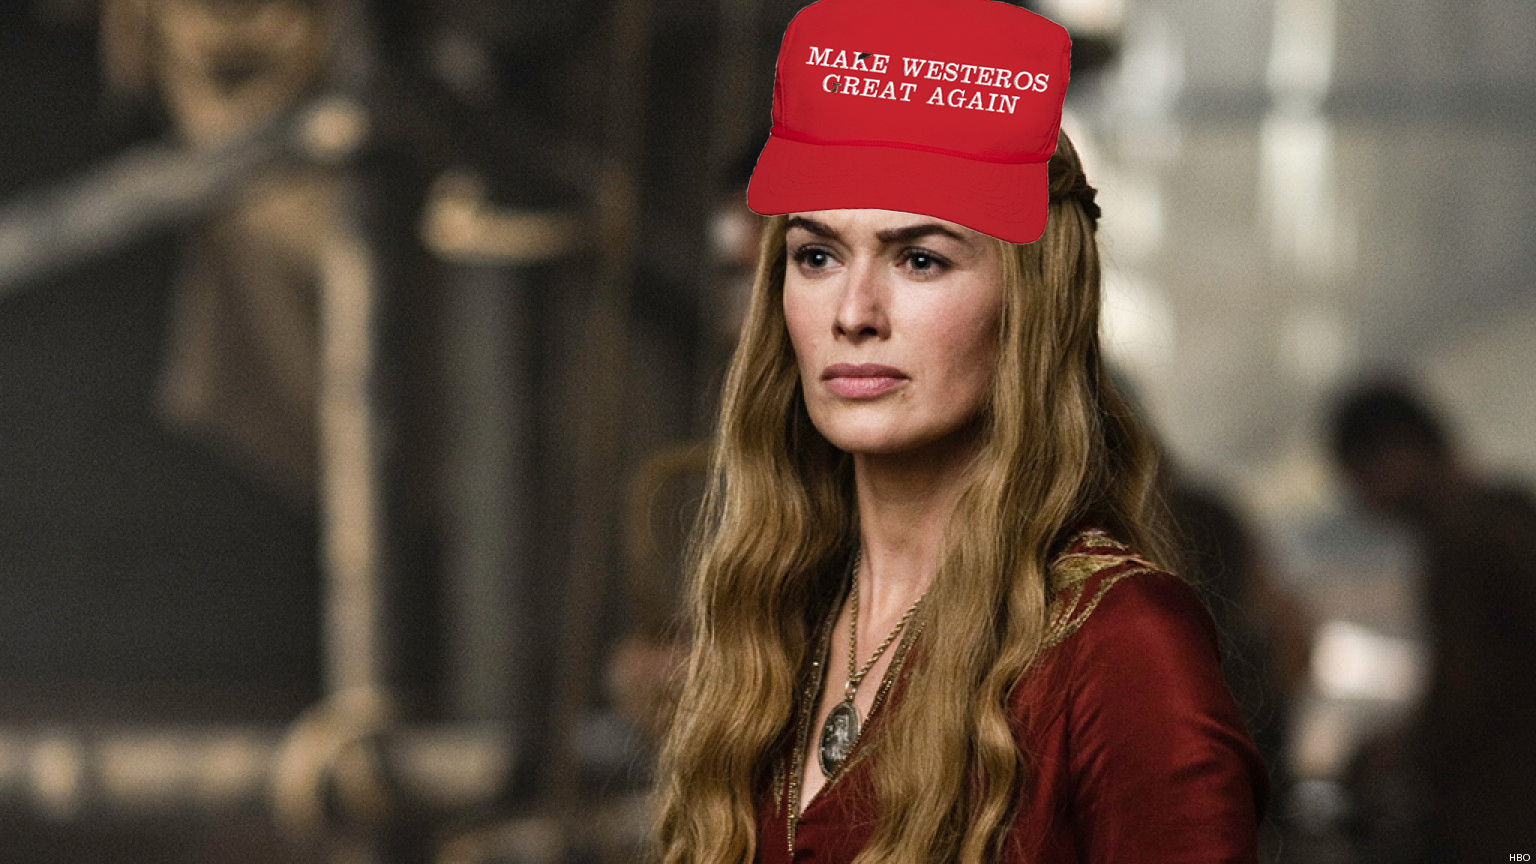 Don't Trust What the Fake News Media Says About Cersei Lannister